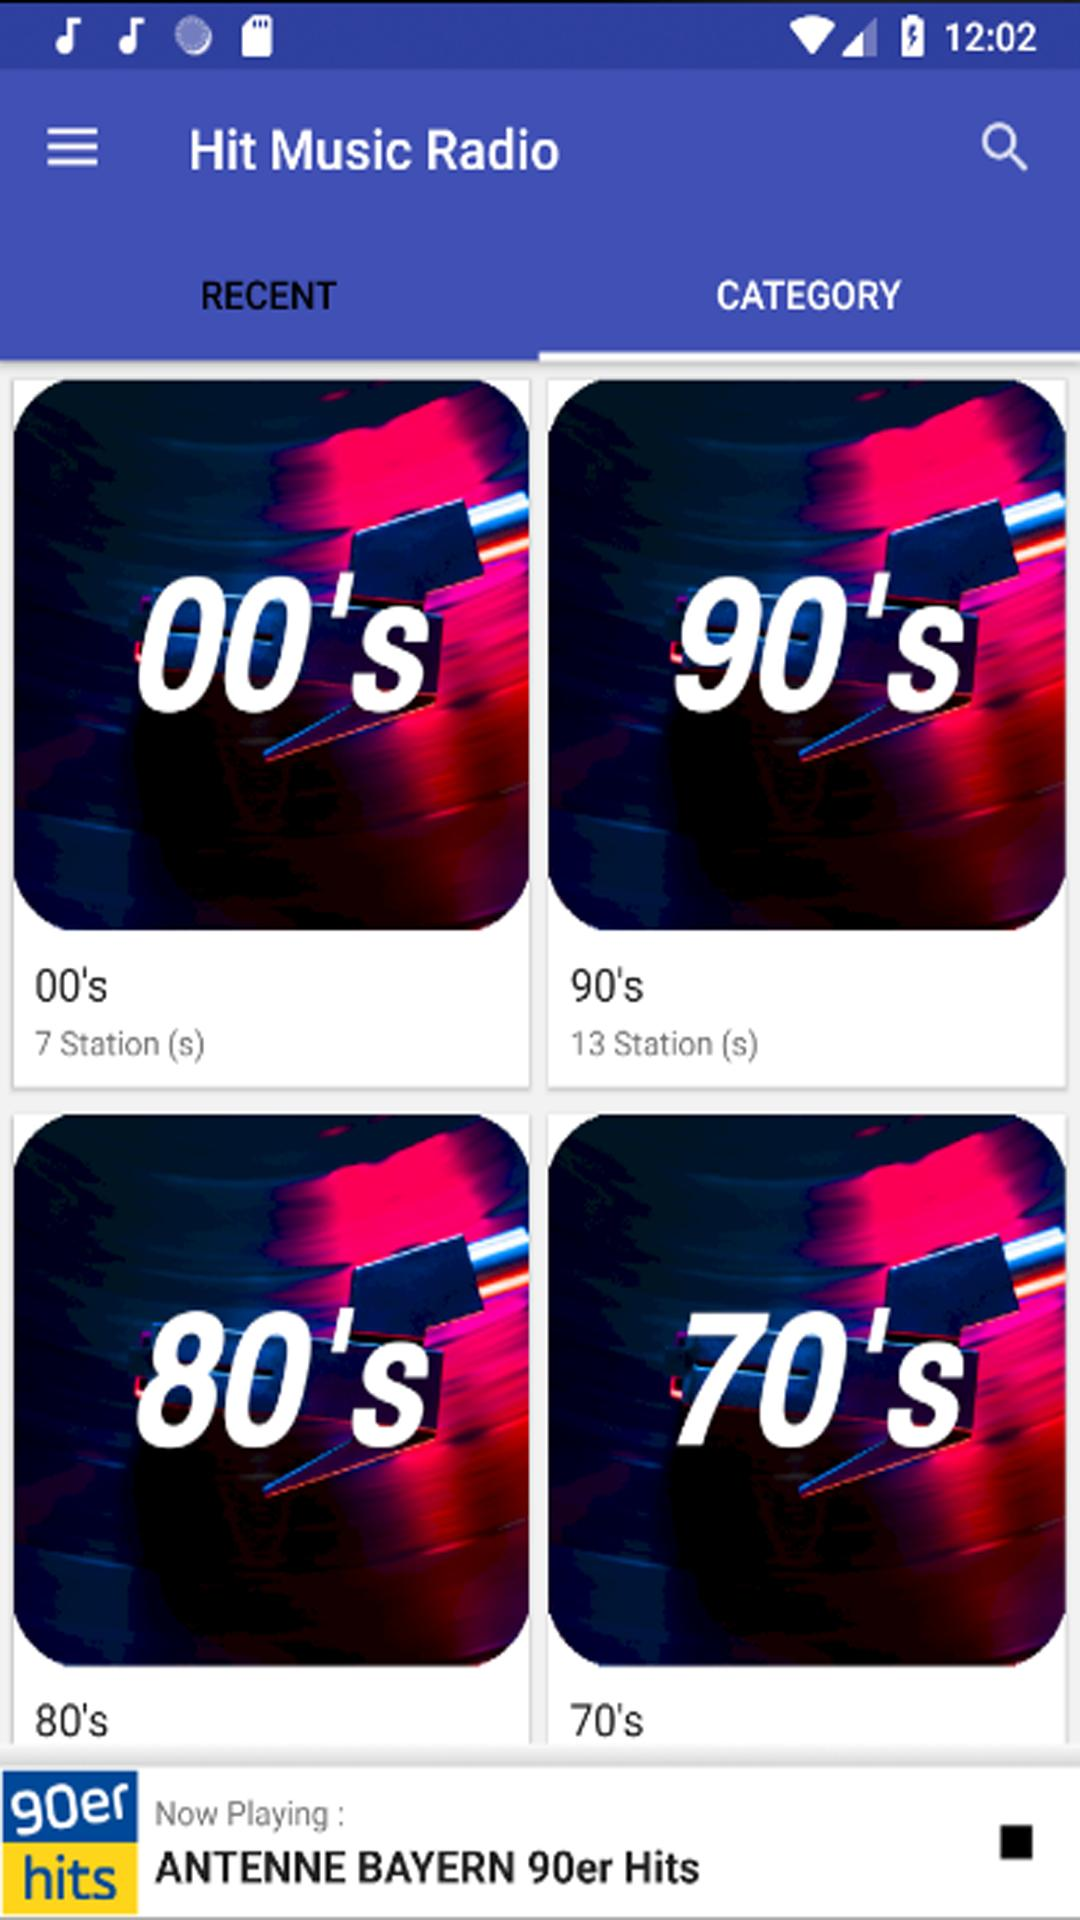 60s 70s 80s 90s 00s Hit Music Radio for Android - APK Download